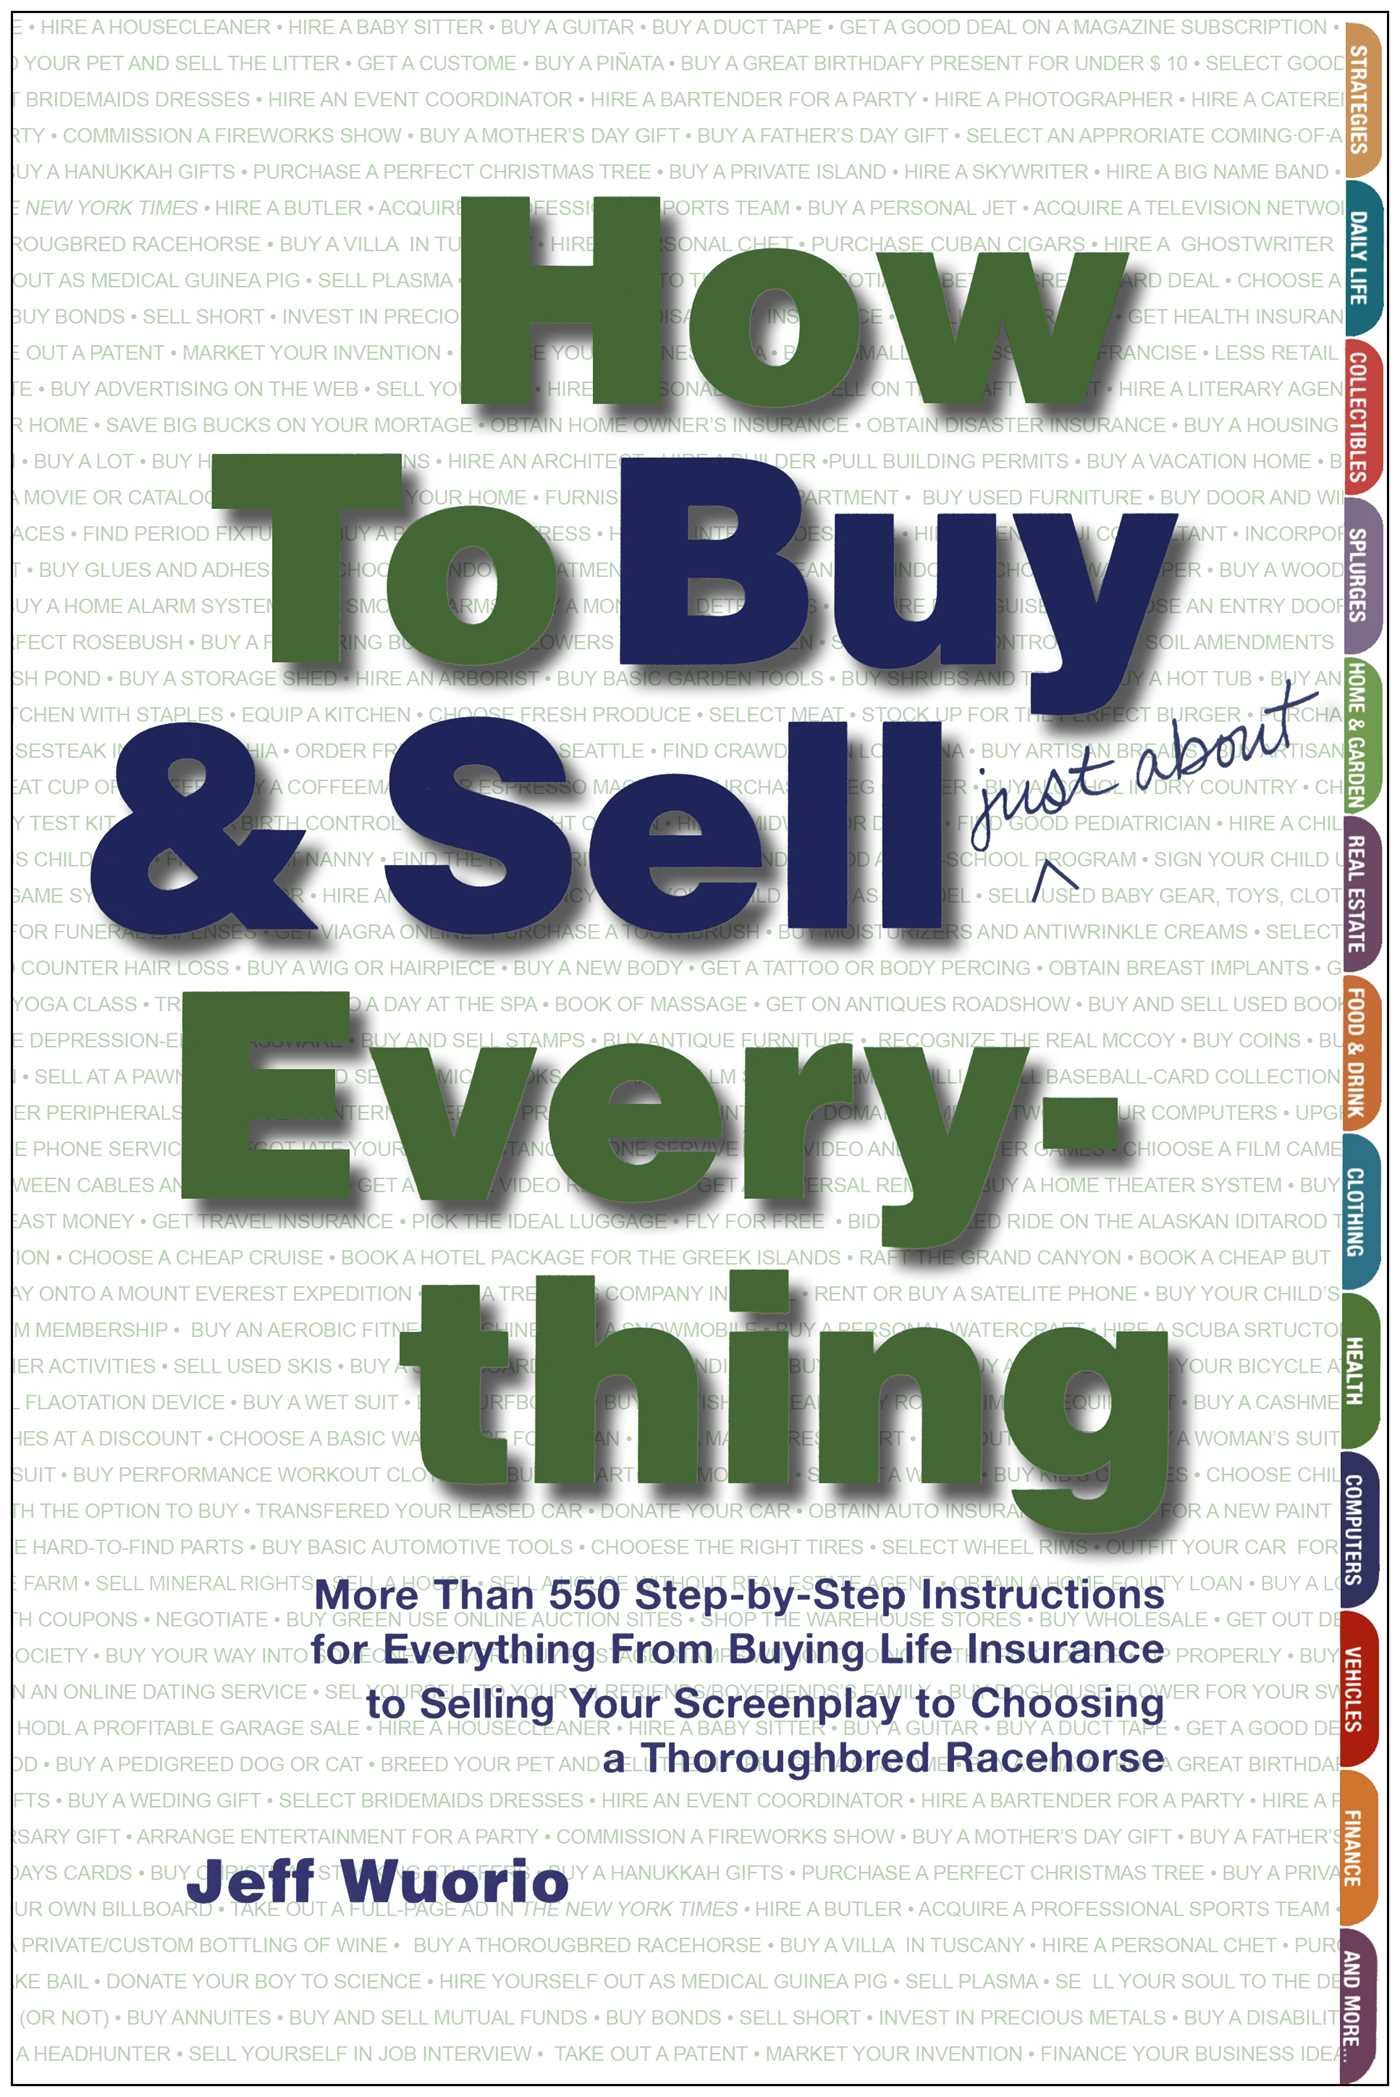 How-to-buy-and-sell-(just-about)-everything-9781451603927_hr